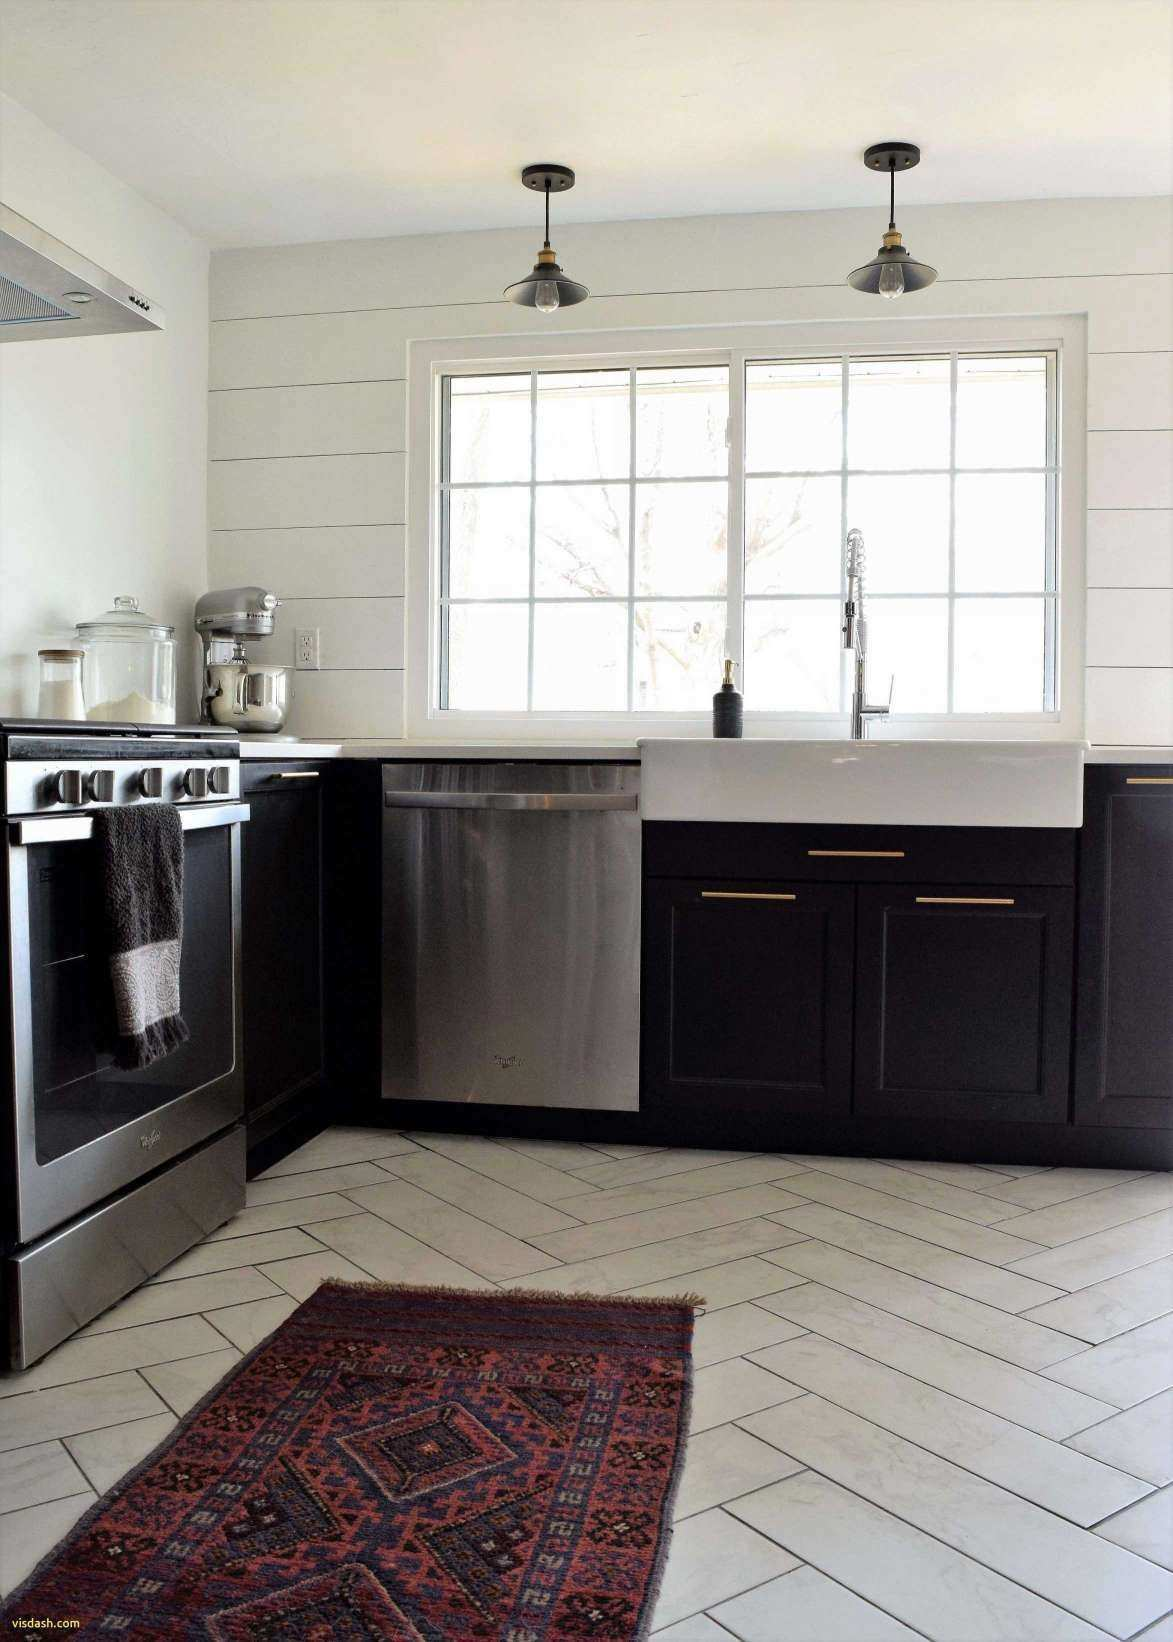 Paint Ideas for Bathroom New Kitchen Remodel Designs Awesome Kitchen